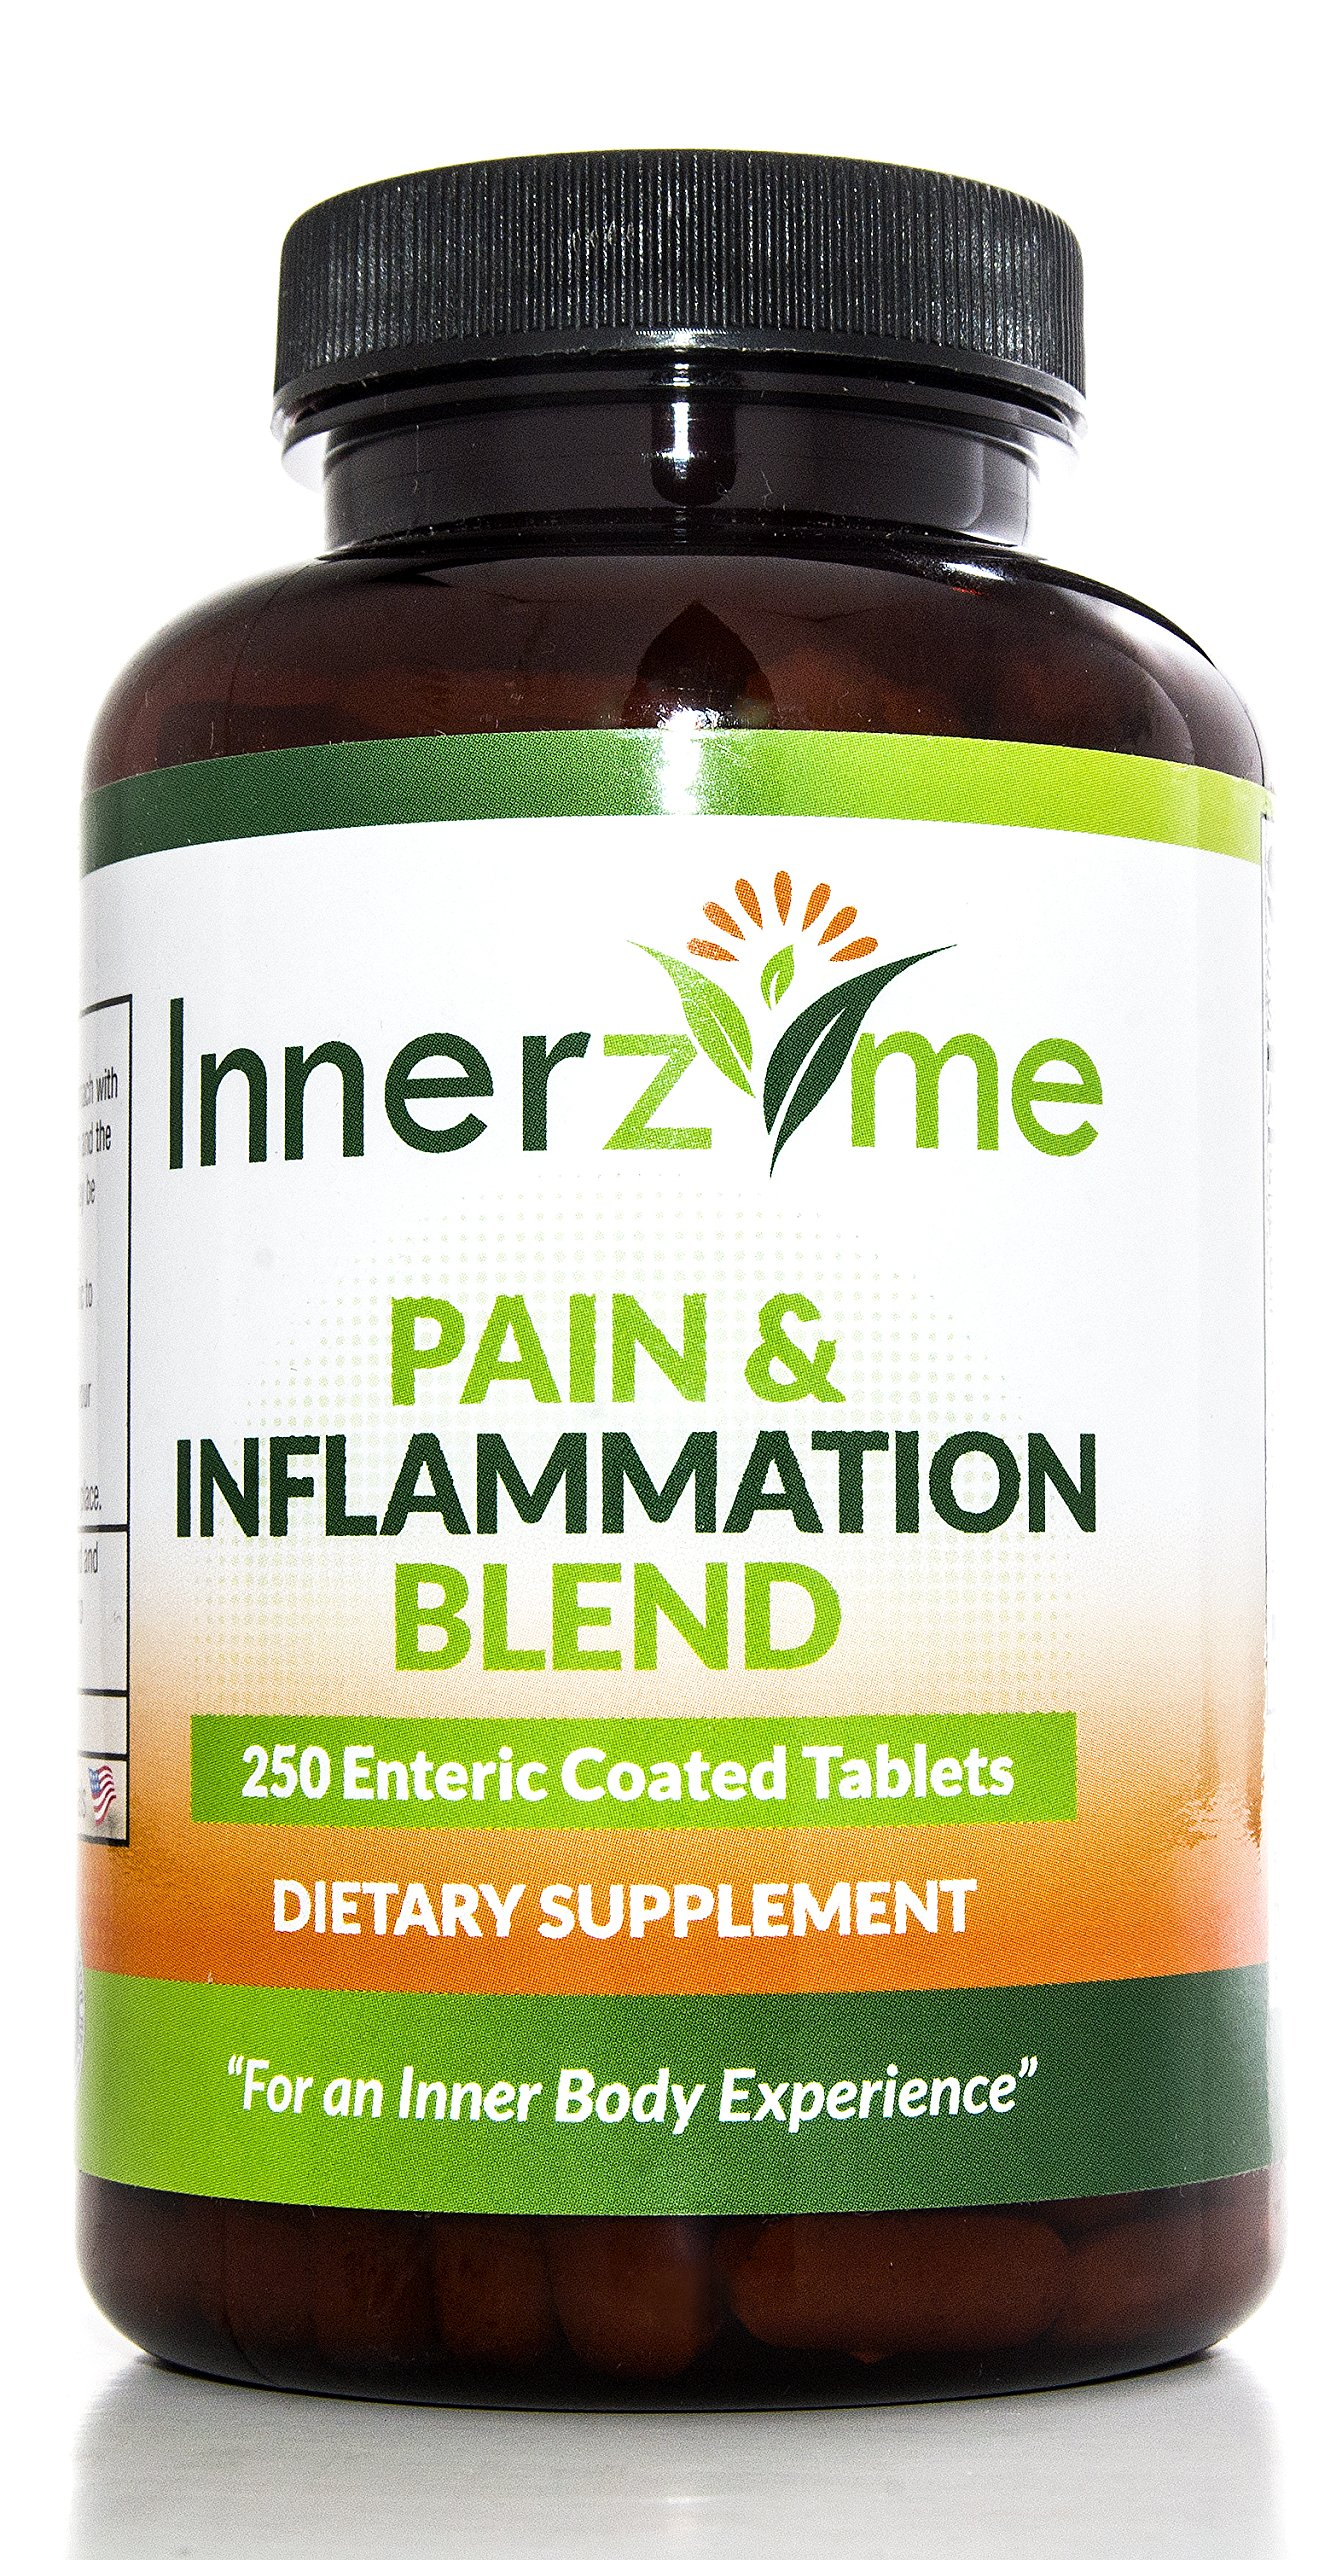 Innerzyme Pain And Inflammation Enzyme Blend Tablets, 250-Count Bottle